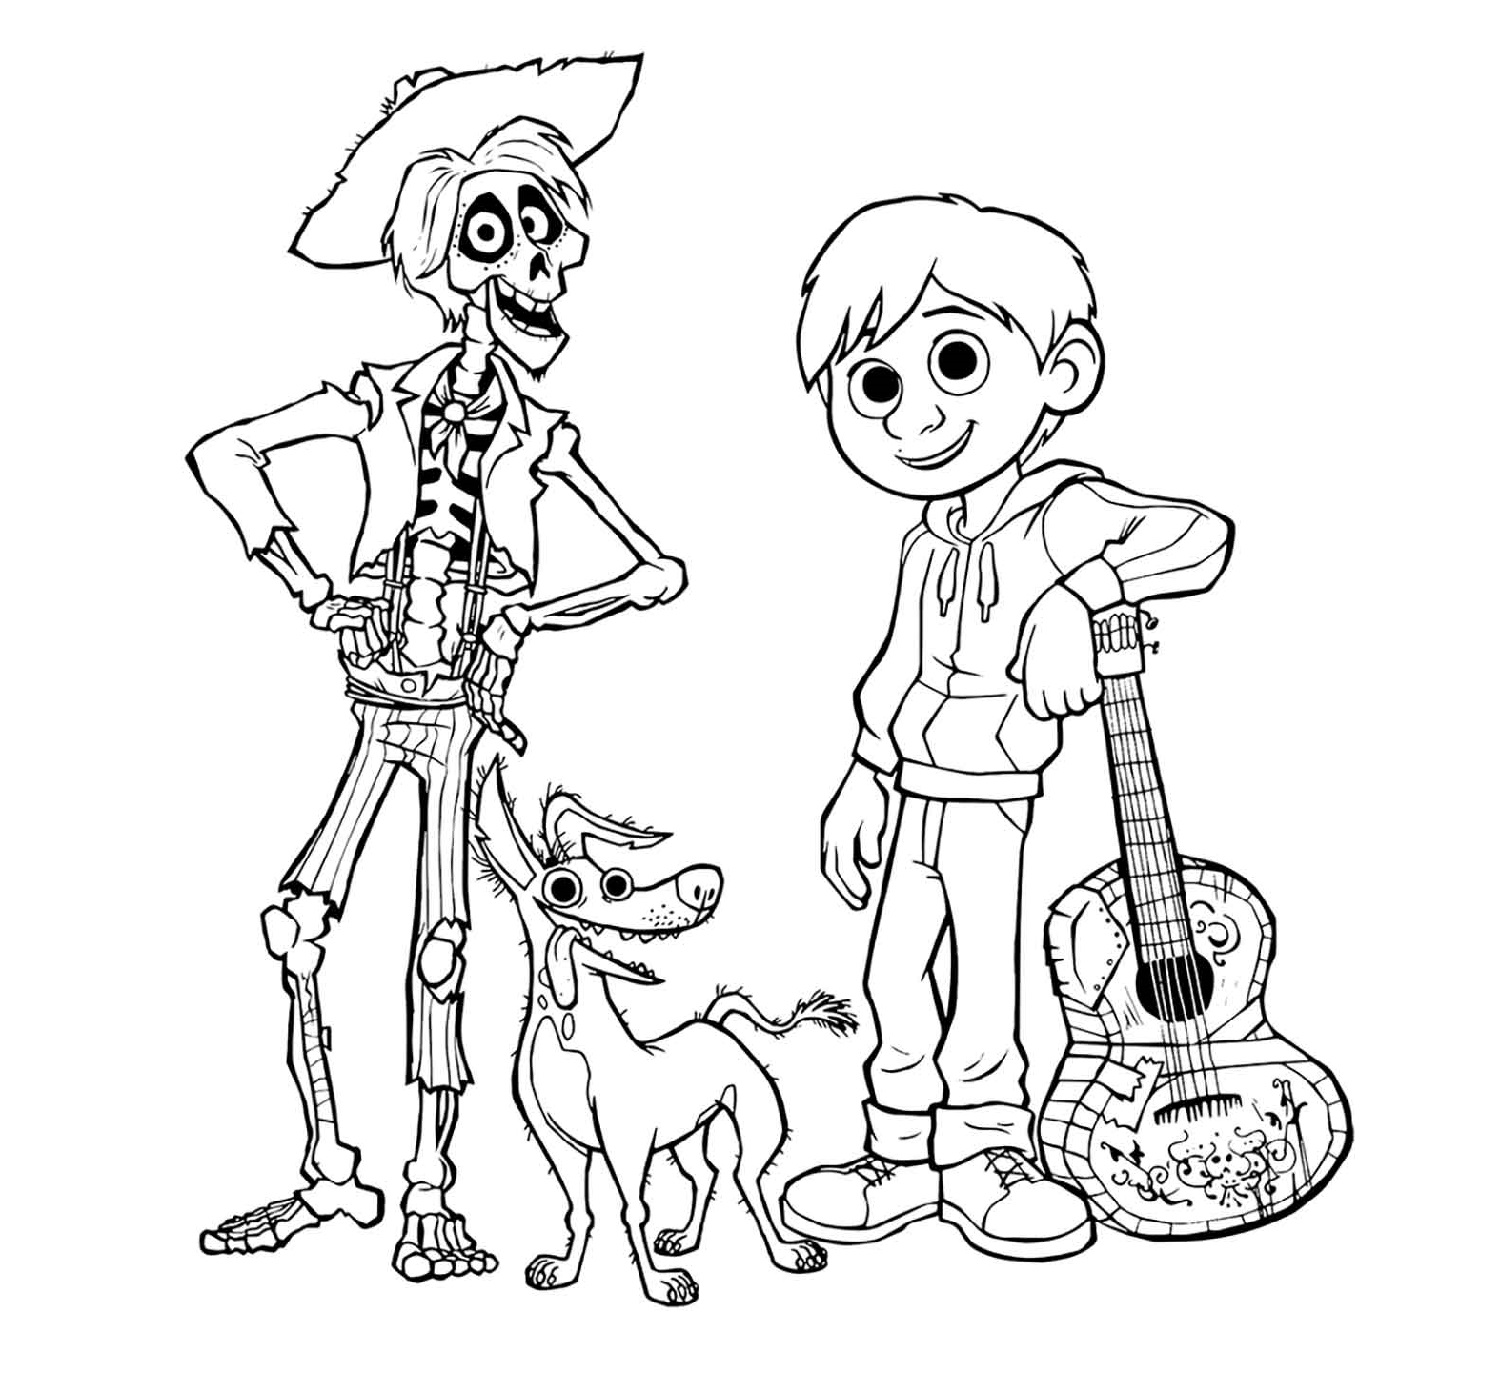 Pixar Coco Coloring Pages  9 Coloring